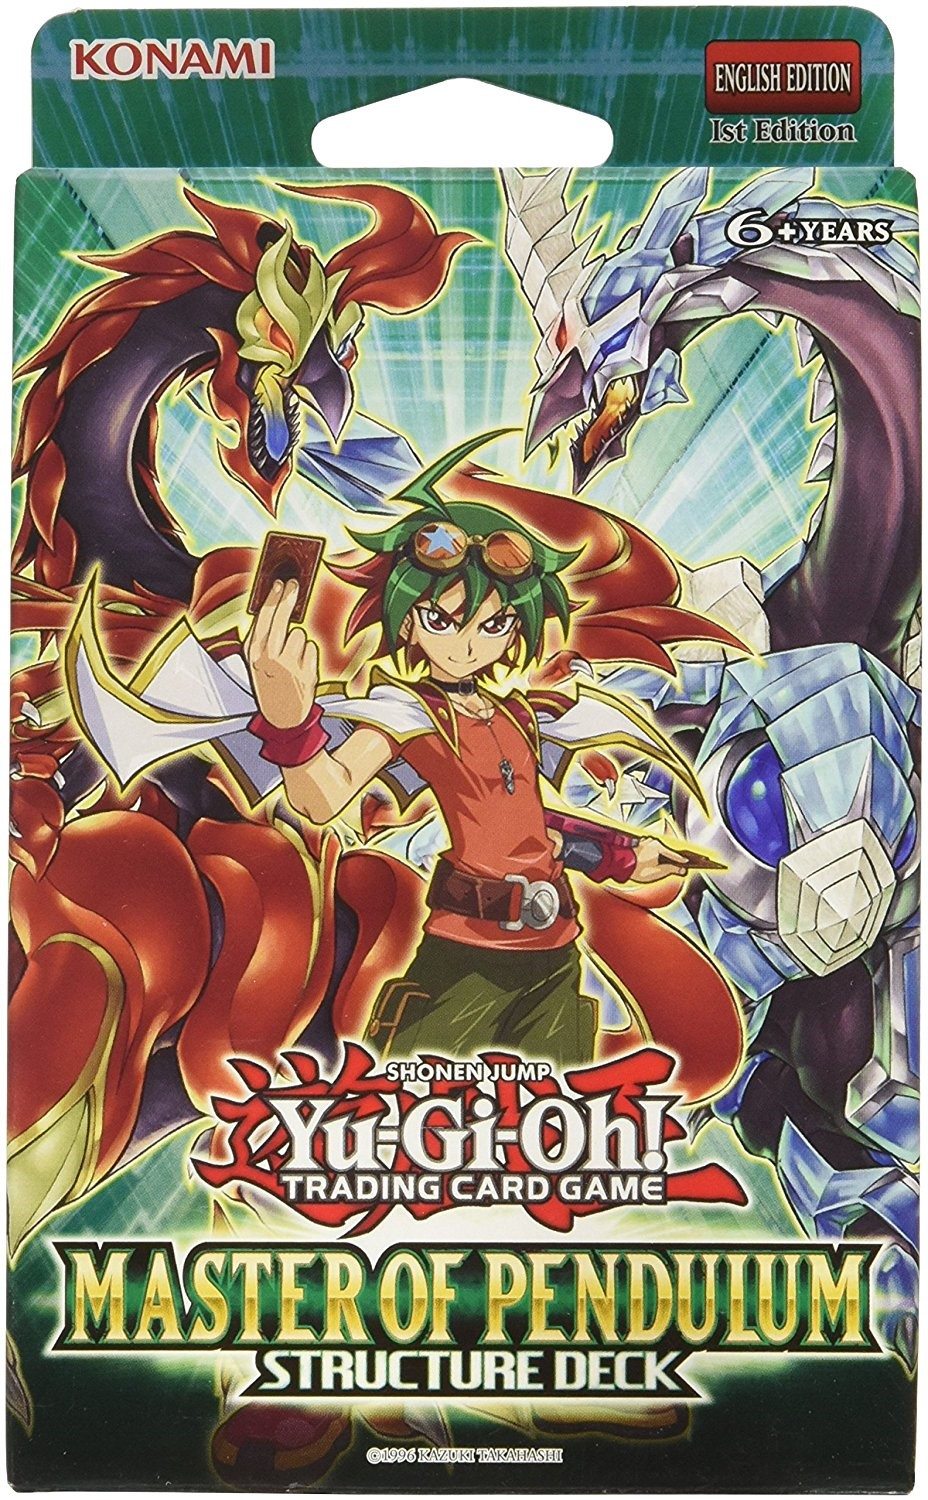 /attachments/112022091047038207163069072245144142203129087044/Yu-Gi-Oh%20Number%2029%20Master%20Of%20Pendulum%20Structure%20Deck%20%20(3).jpg